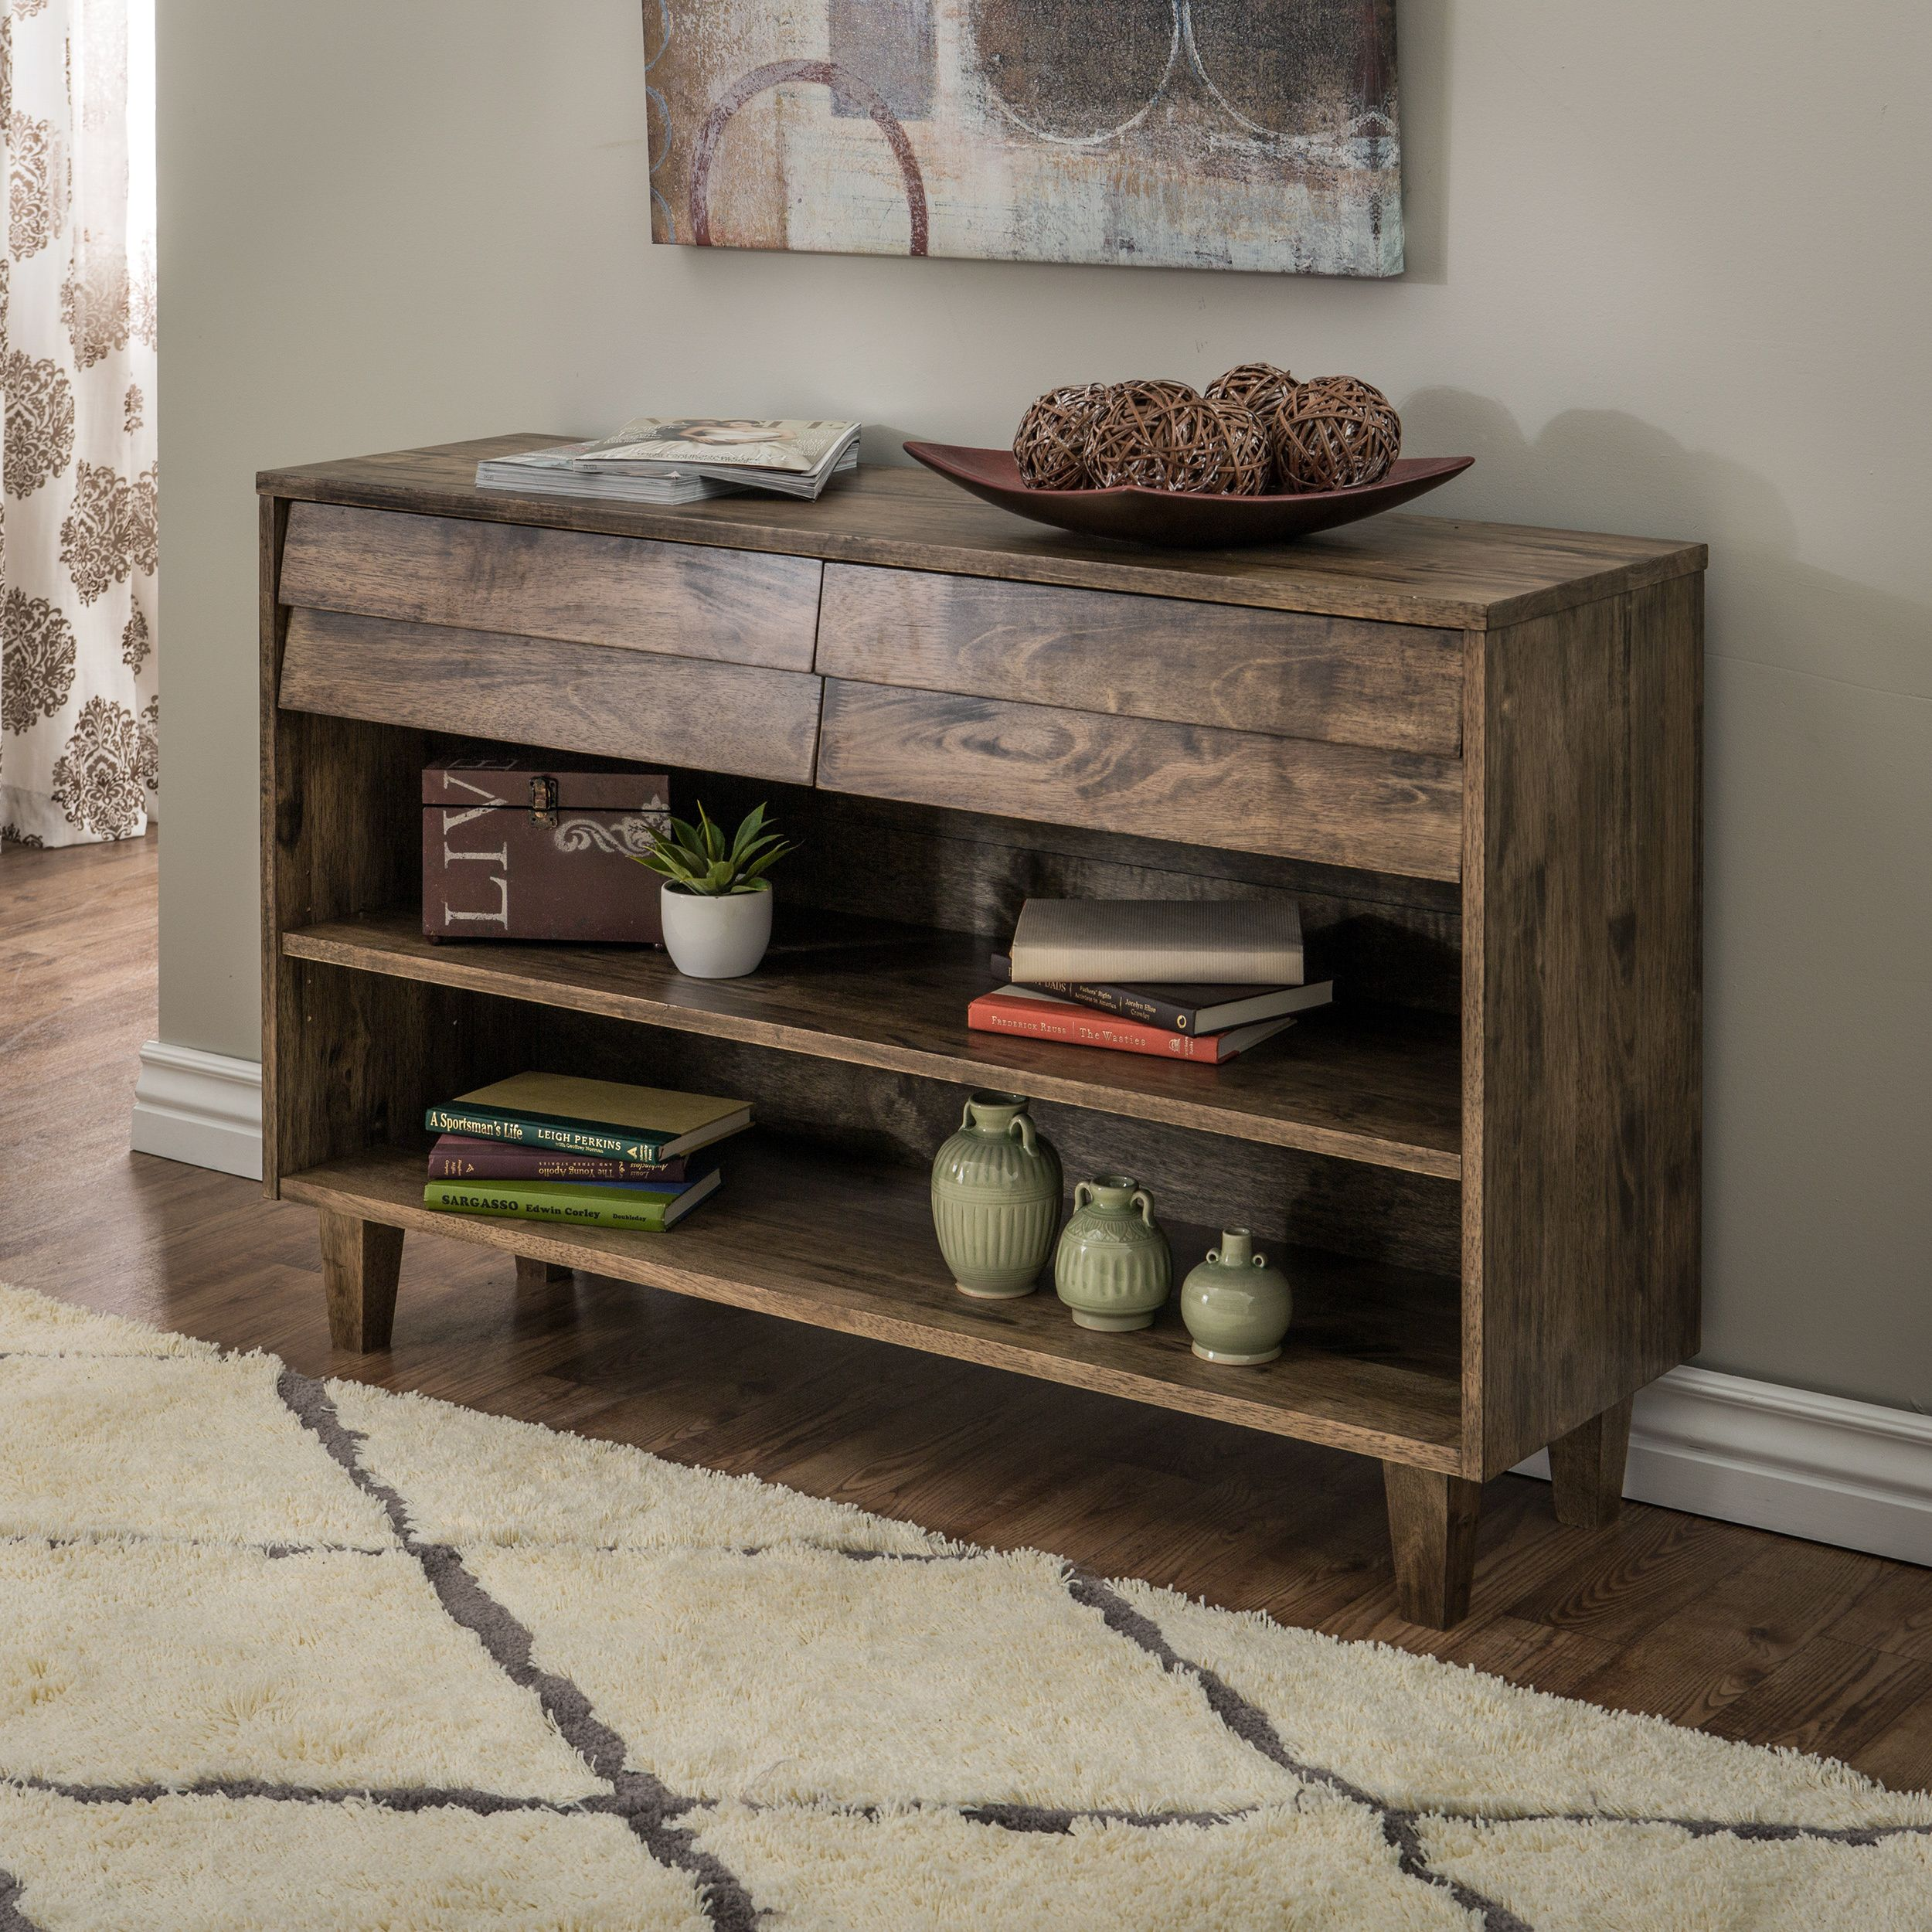 Solid rubber wood finished with a natural burn gives this venetian console table a rustic yet refined appearance with two drawers and two open shelves for